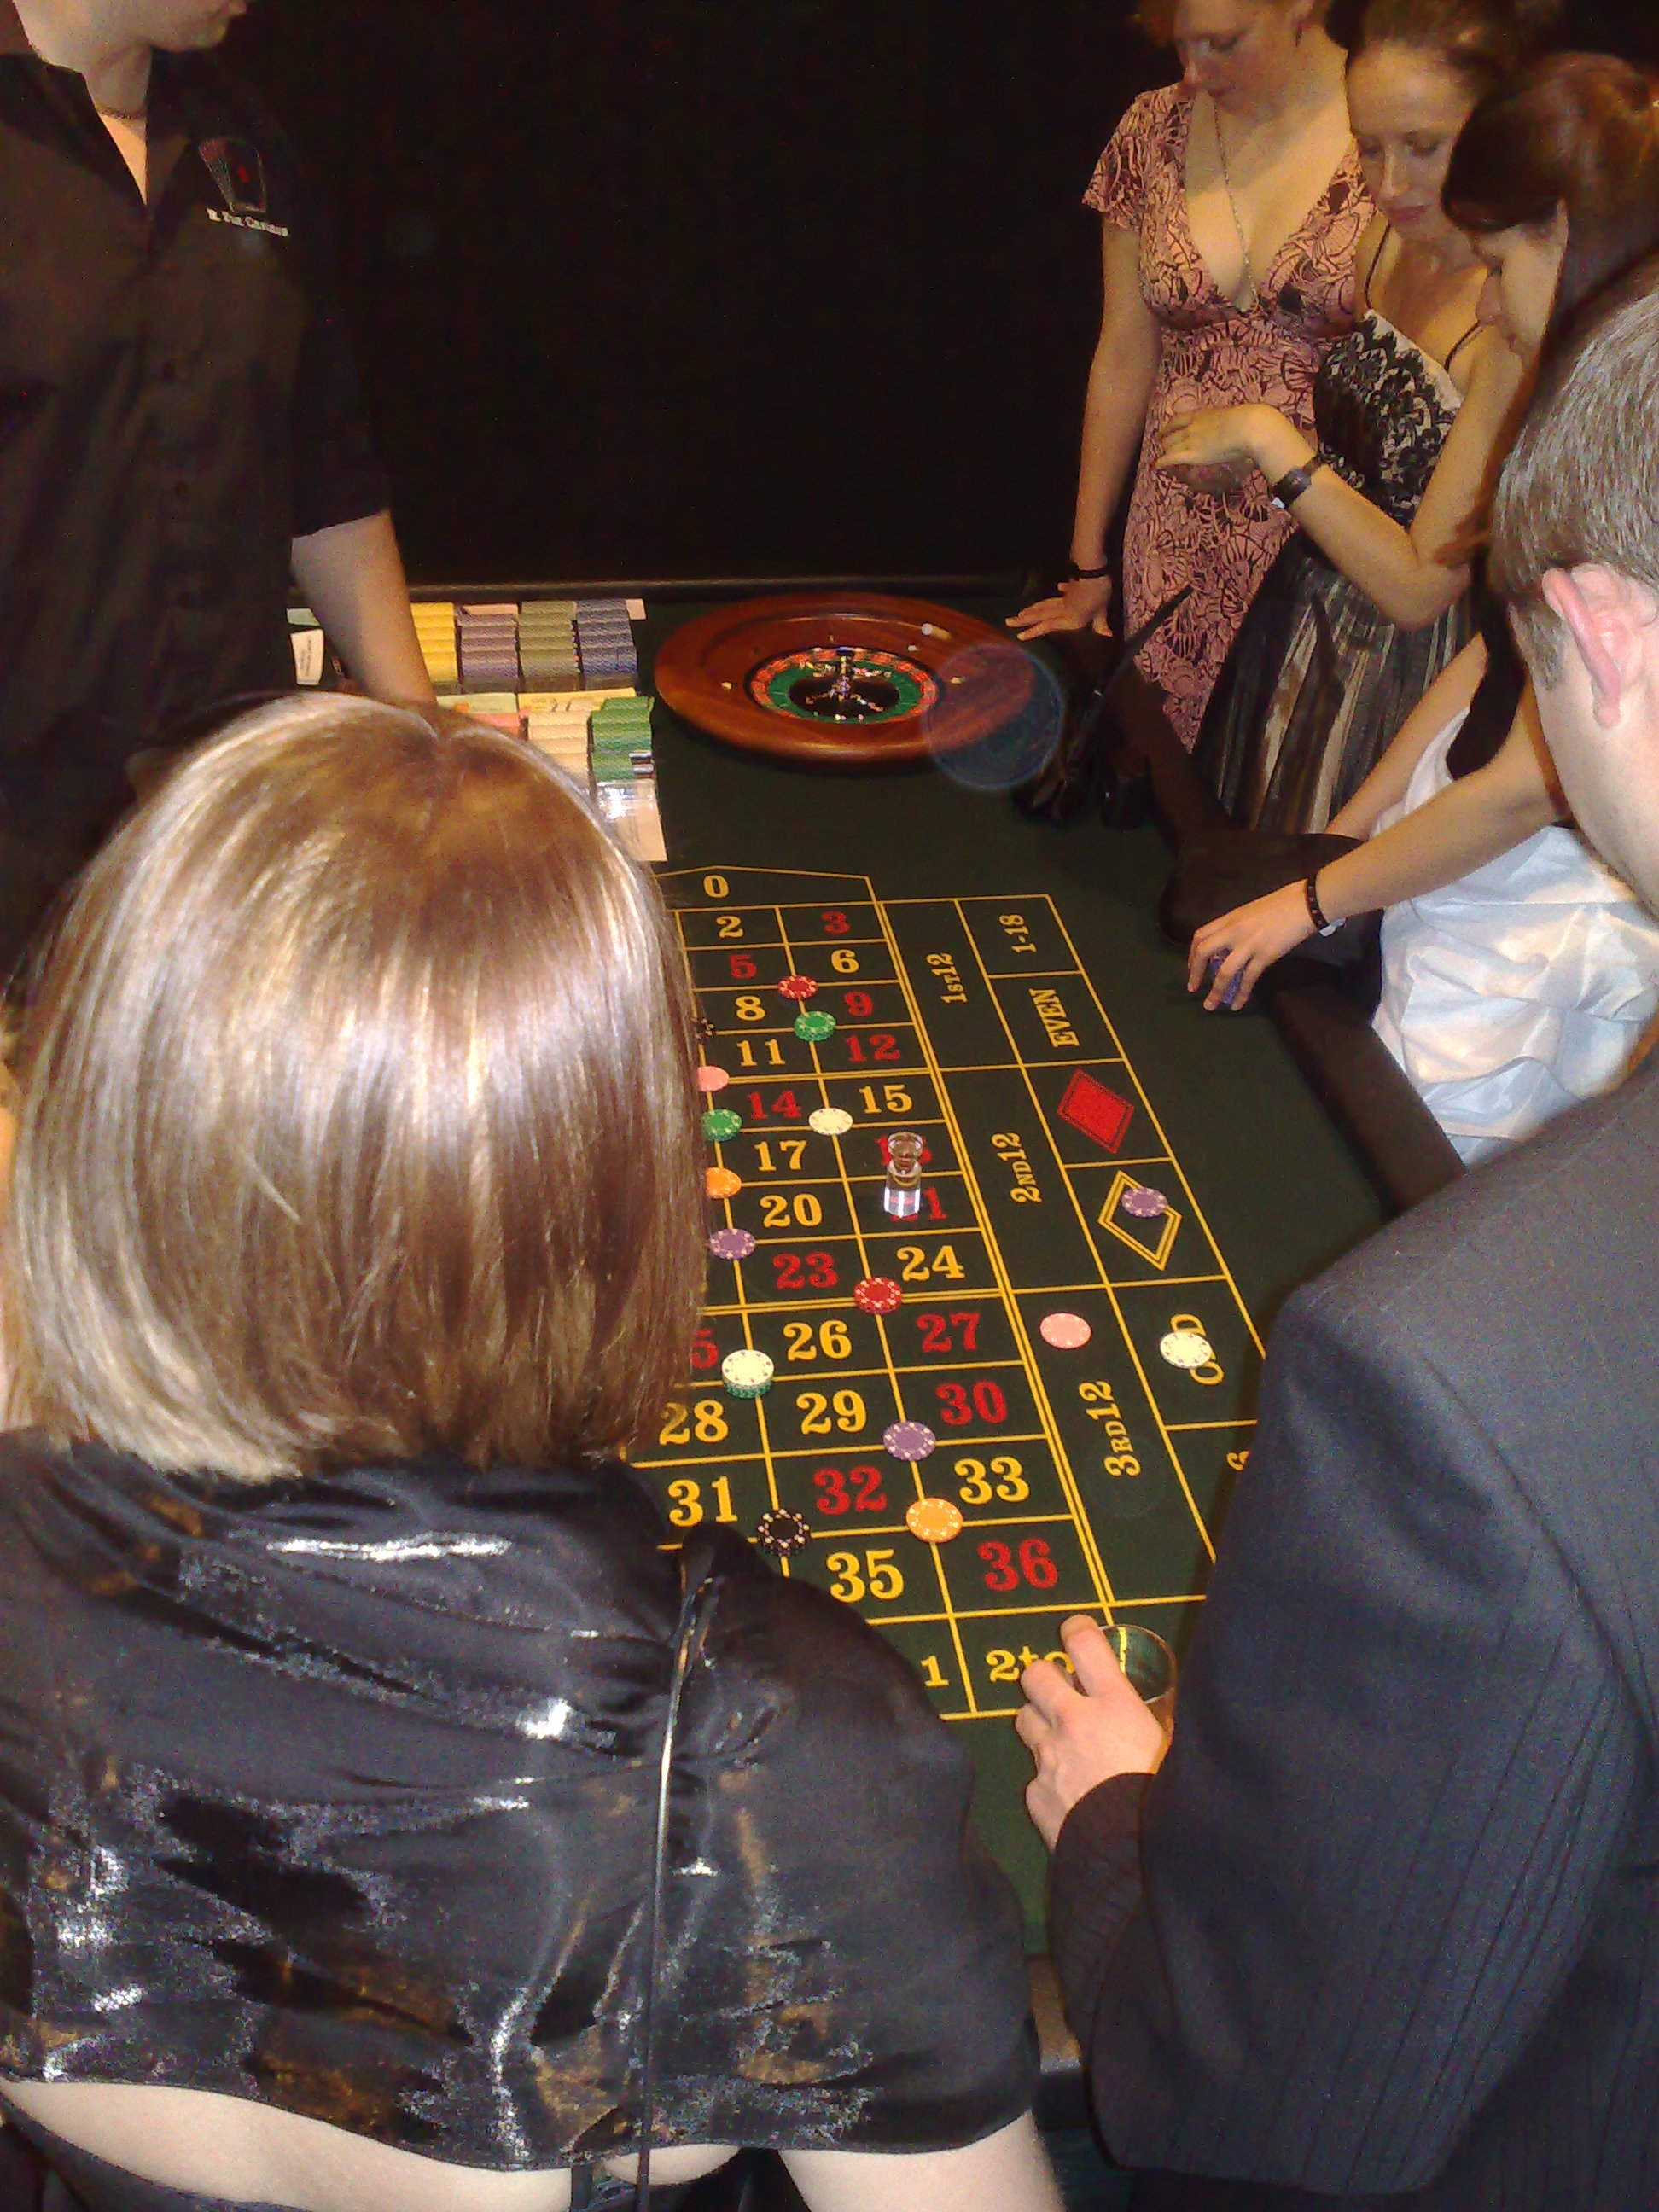 Fun Casino Hire -  01524 733540 - Areas we cover for Fun Casino Hire include Lancashire, Cumbria, Cheshire, Merseyside, Manchester, Yorkshire, Lancaster, Leeds, Kendal, Windemere, Barrow-in-furness, Carslile, Preston, Blackpool, Wigan, Bolton, Blackburn and all surrounding areas. Call us for more info.